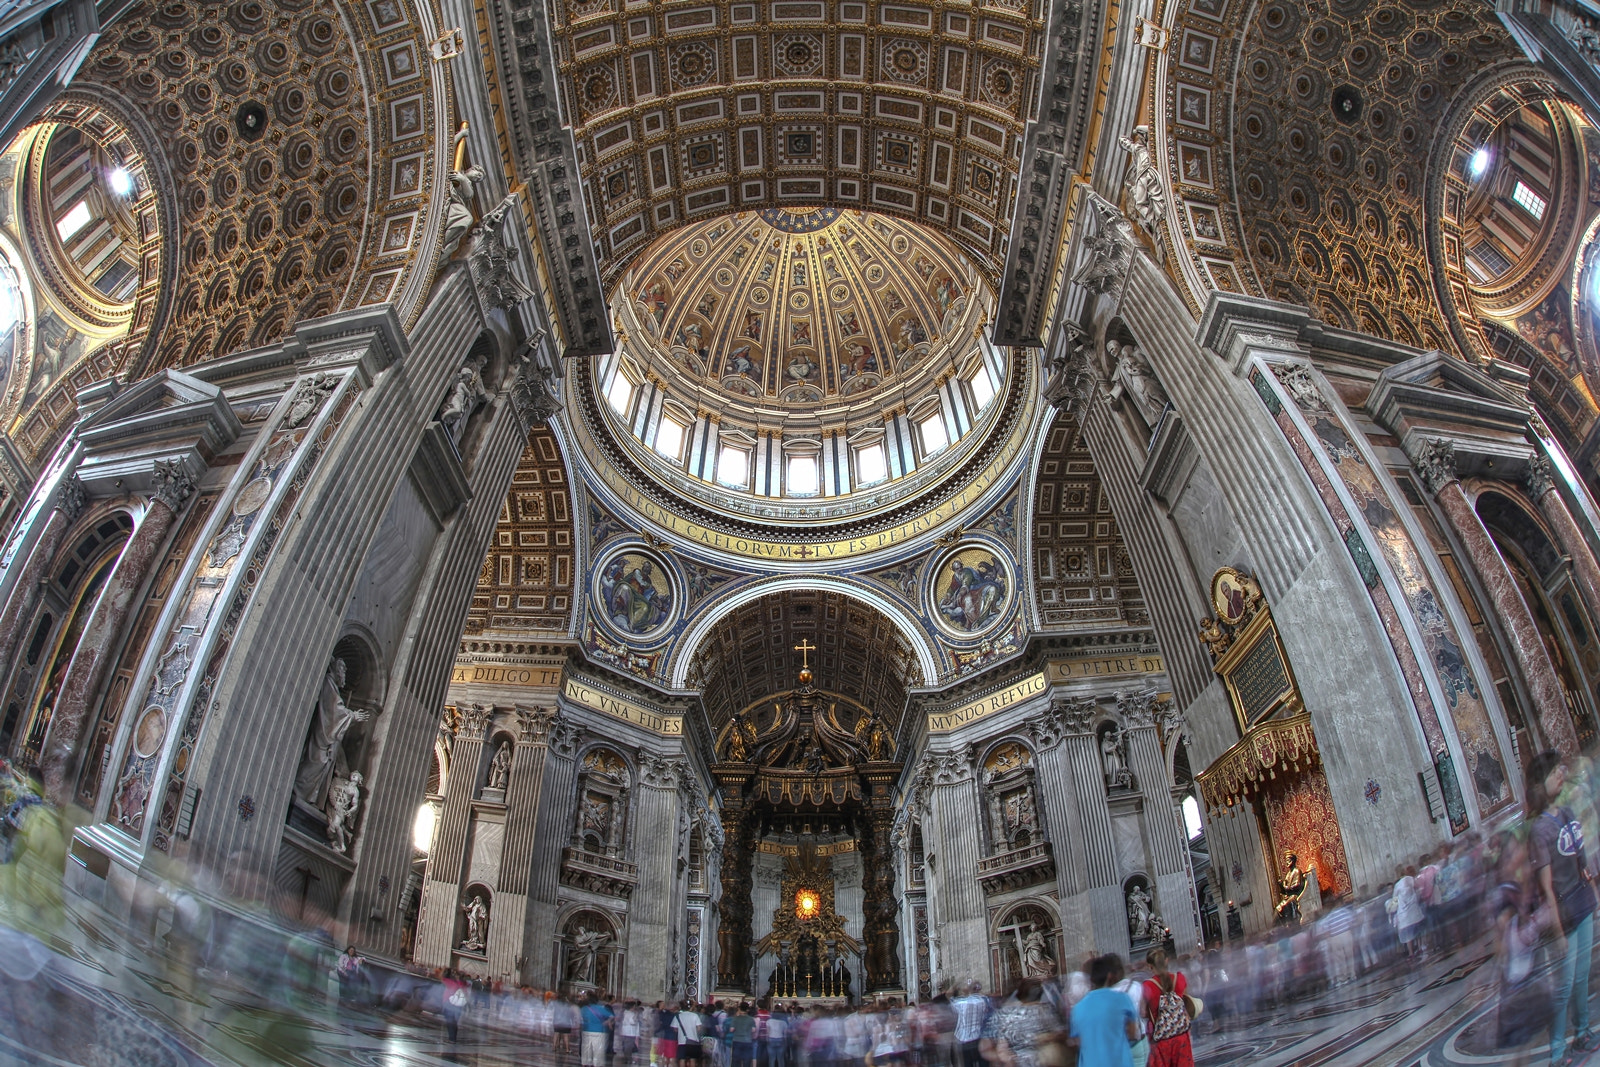 Photograph *St Peter's Basilica* by erhan sasmaz on 500px